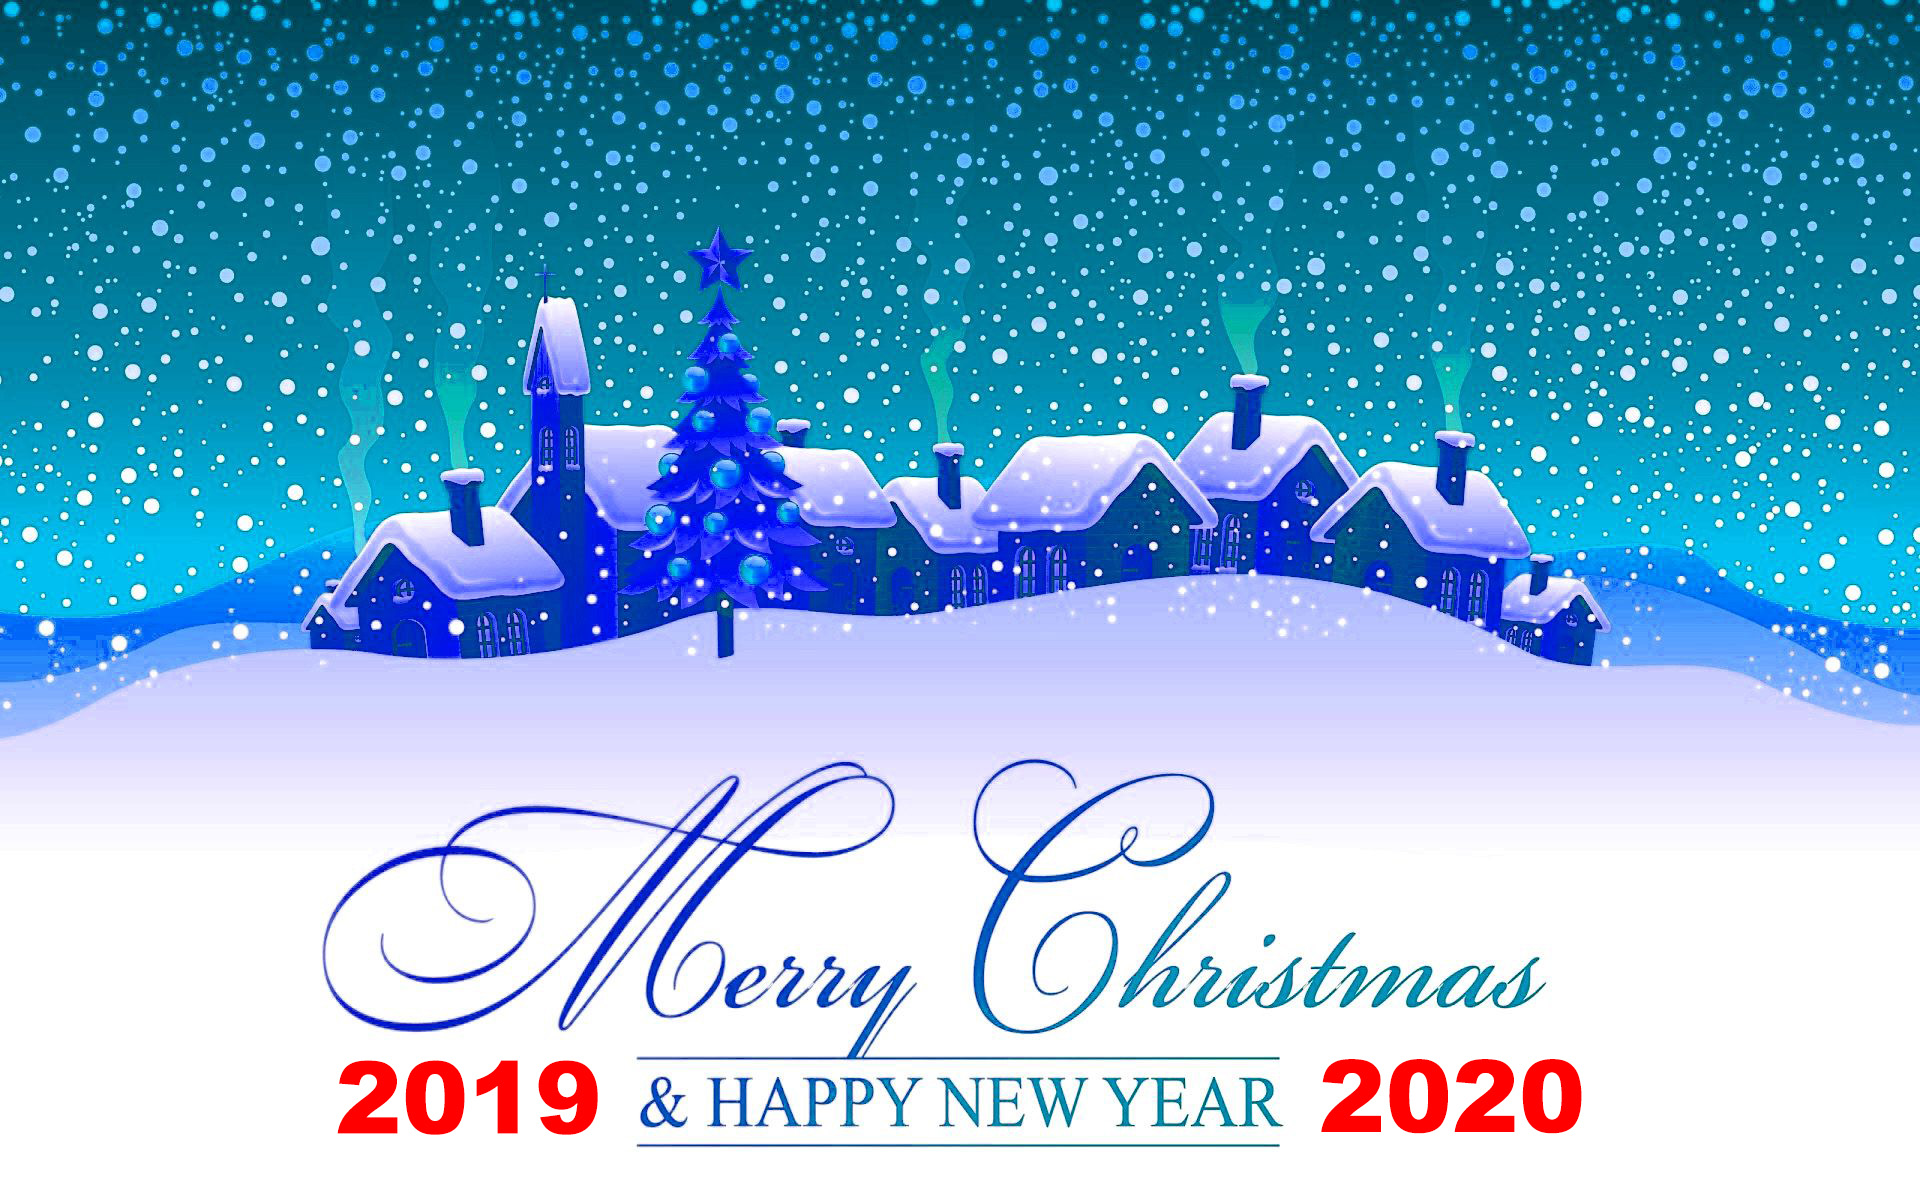 Merry Christmas 2019 Wallpapers HD download 1920x1200